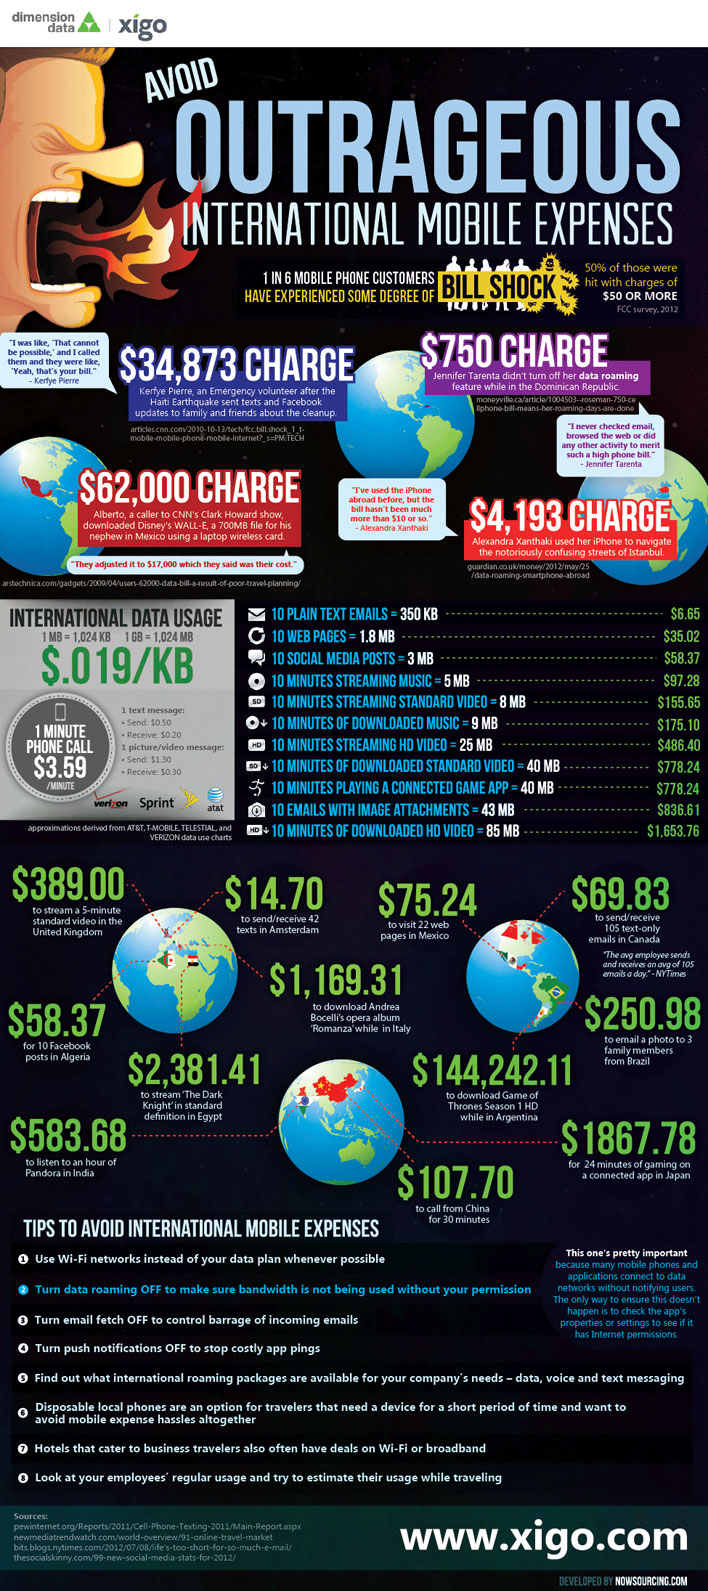 Avoid Outrageous International Mobile Expenses